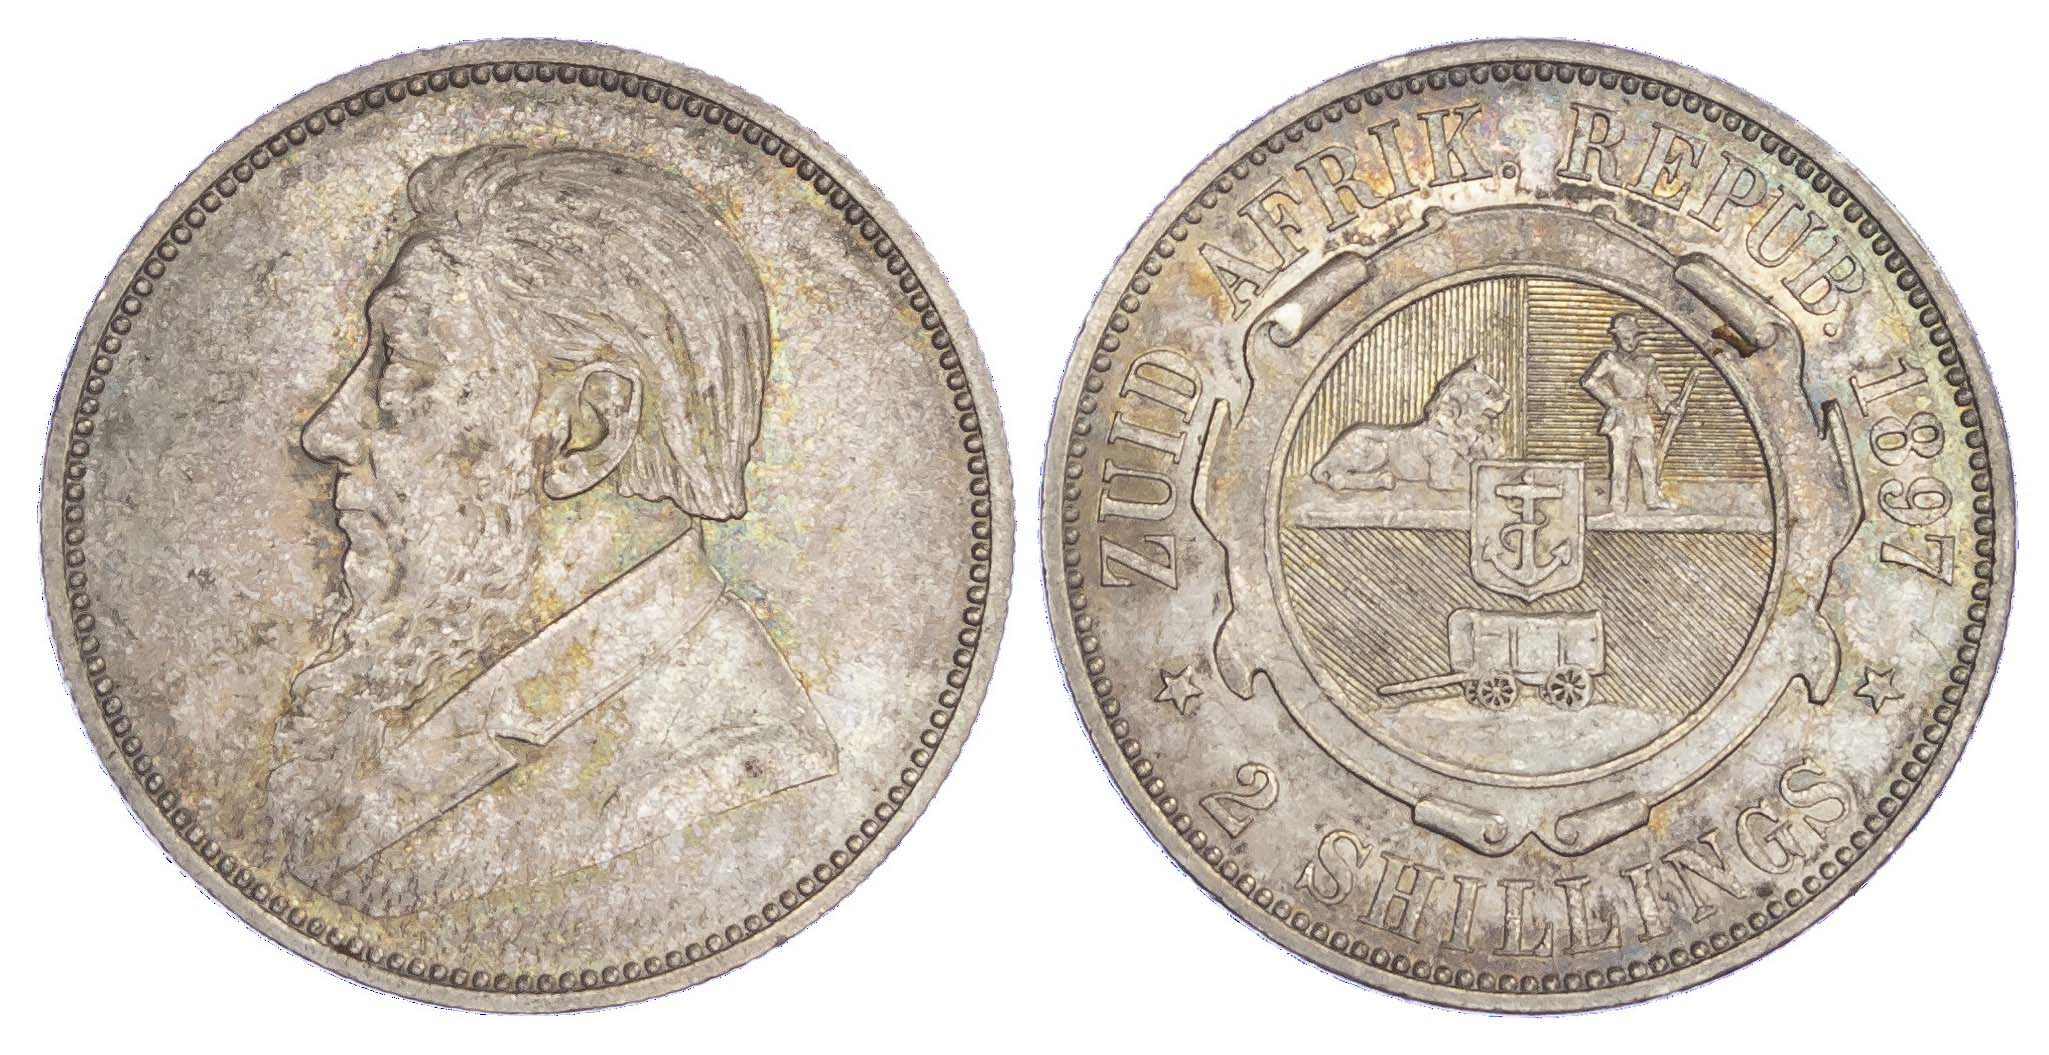 South Africa, Republic, Paul Kruger (1883-1900), silver 2 Shillings, 1897